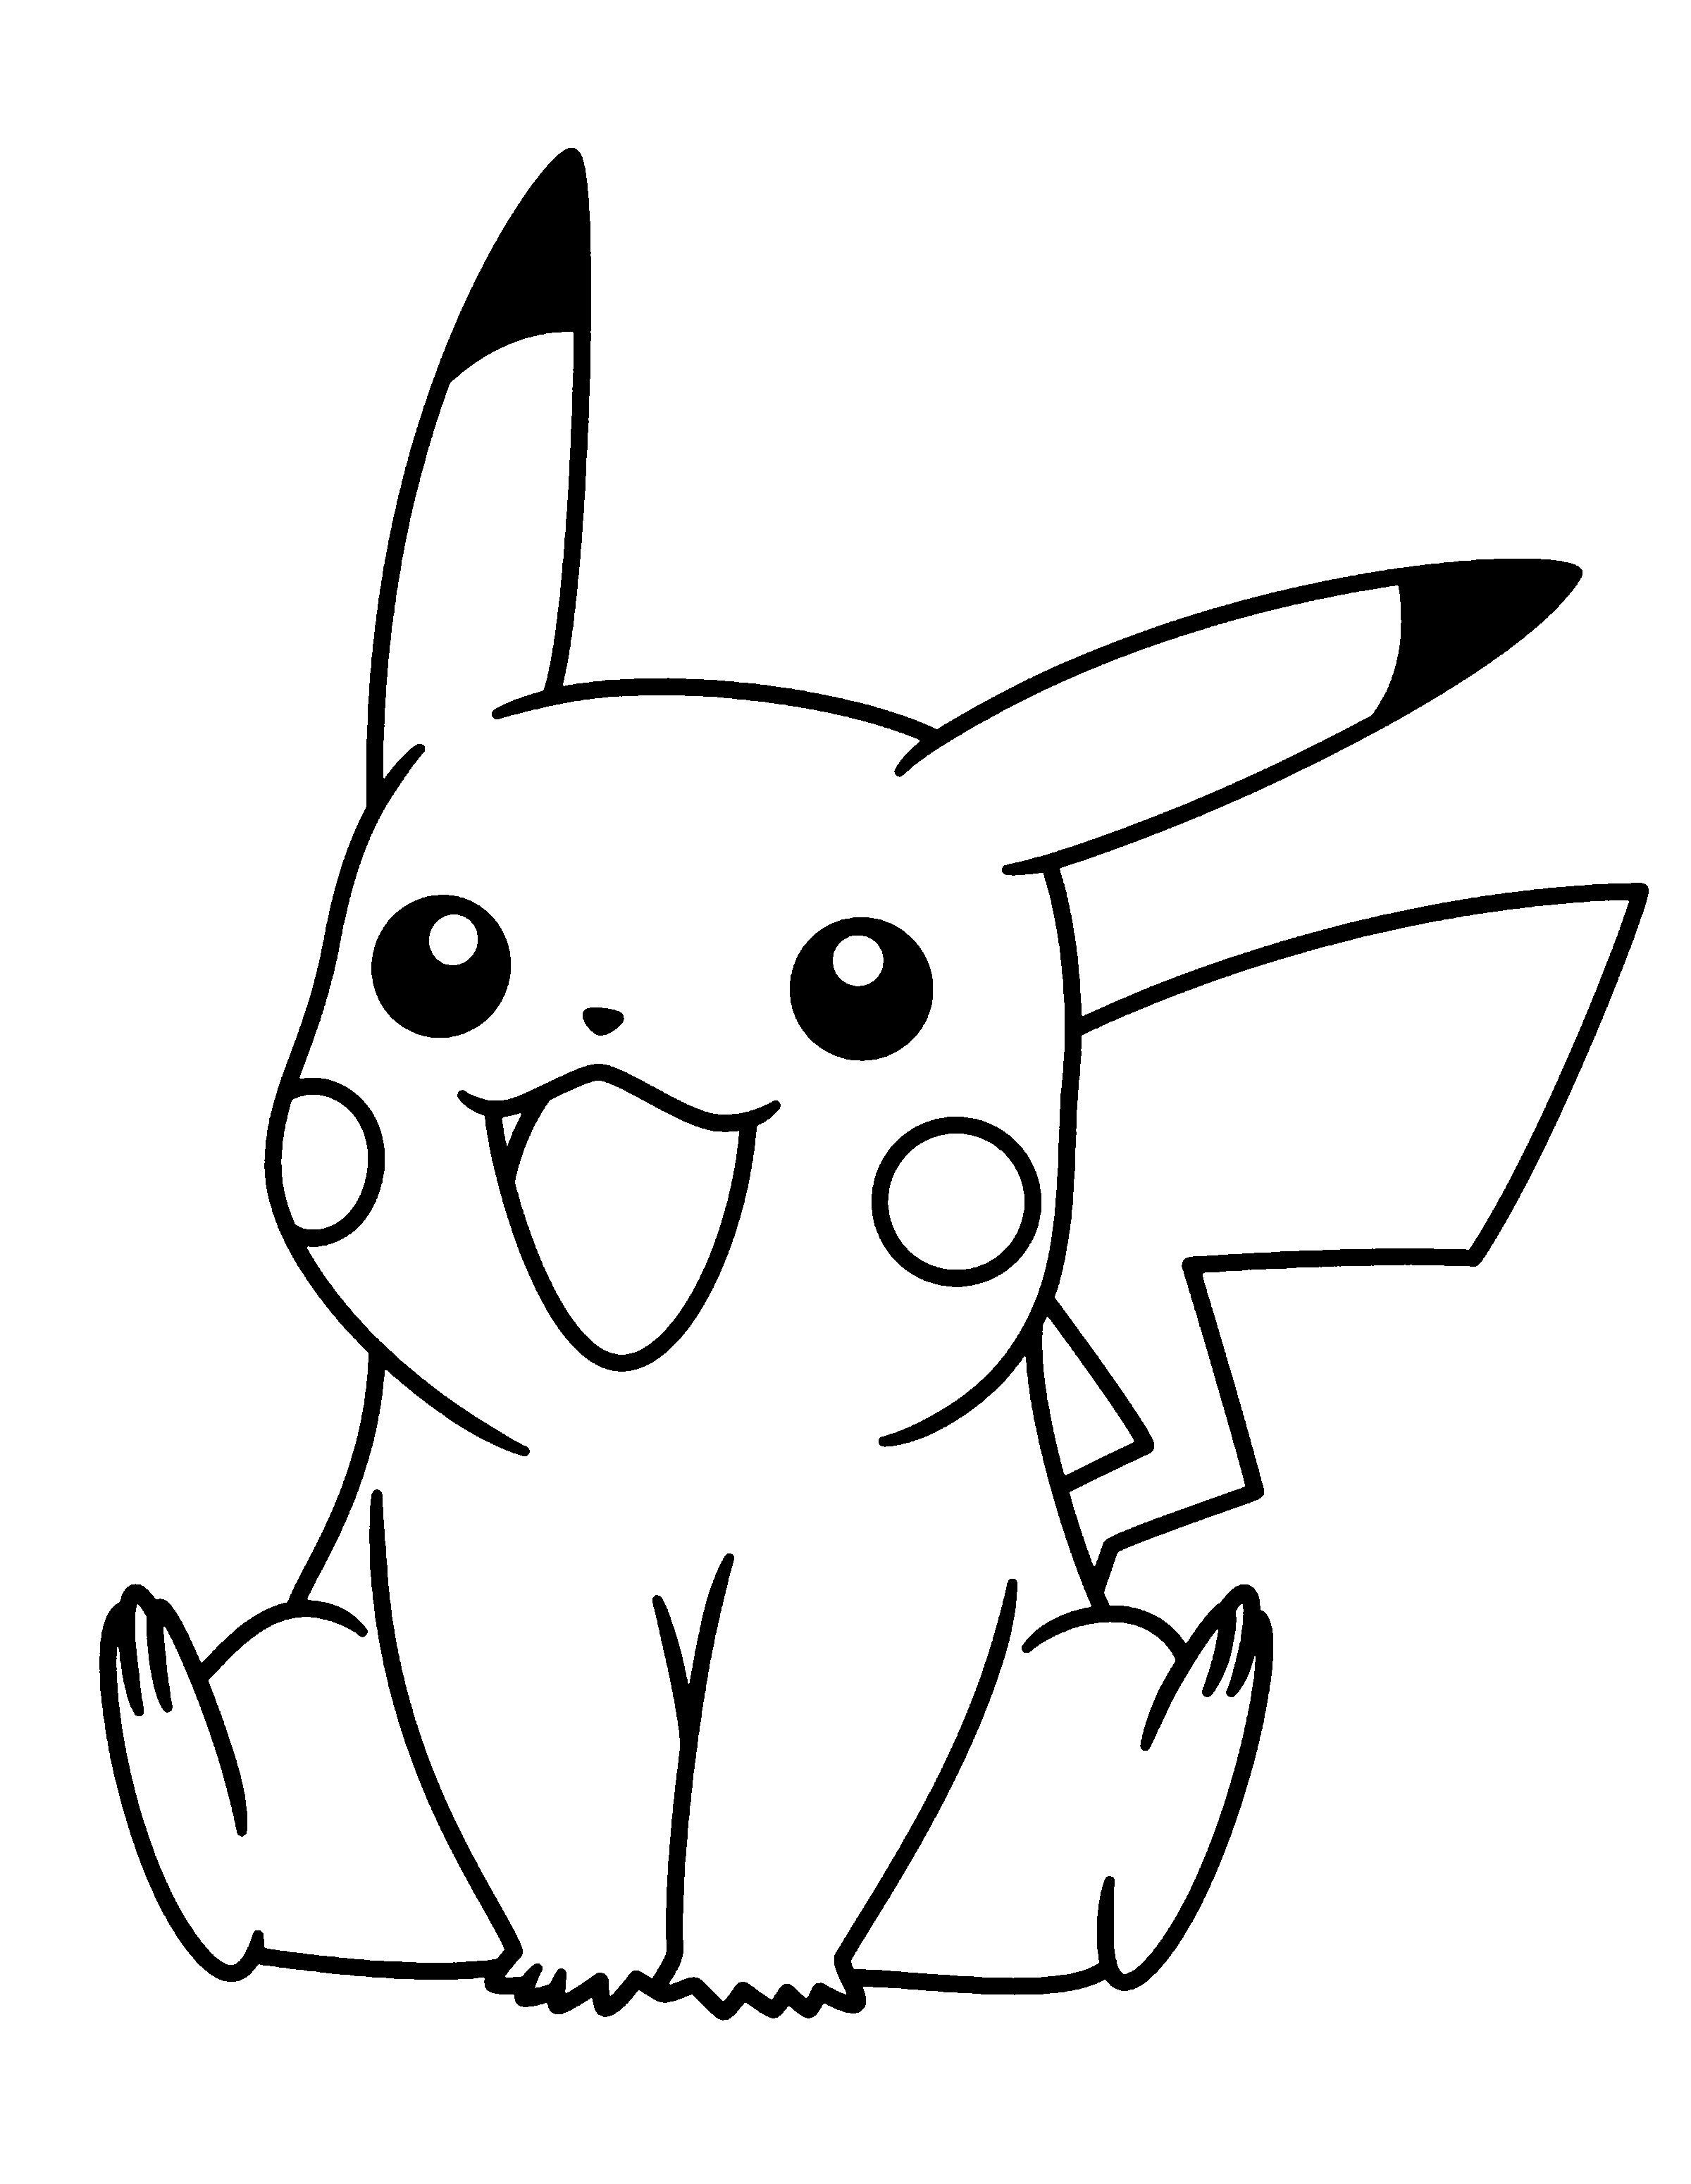 Pokemon Coloring Pages For Adults At GetDrawings